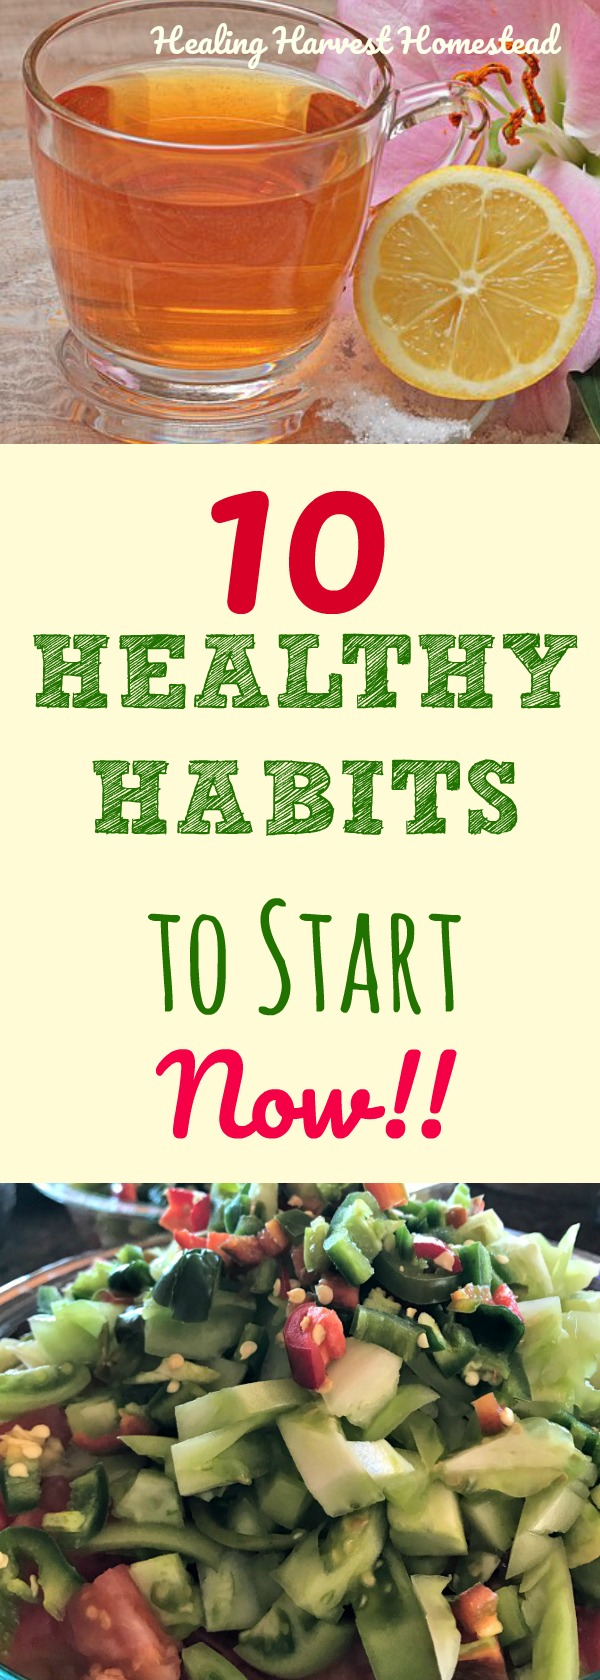 It may be the New Year and time to set goals and start some different good habits...but these 10 Healthy Habits are habits for your health you should start right NOW, no matter what time of the year it is! Get your body, mind, and soul healthy by starting these 10 things right now! New habits are great---as long as they add to your life and health! #healthyhabits #habits #newyear #health #healthy gethealthy #eat #healingharvesthomestead #habits